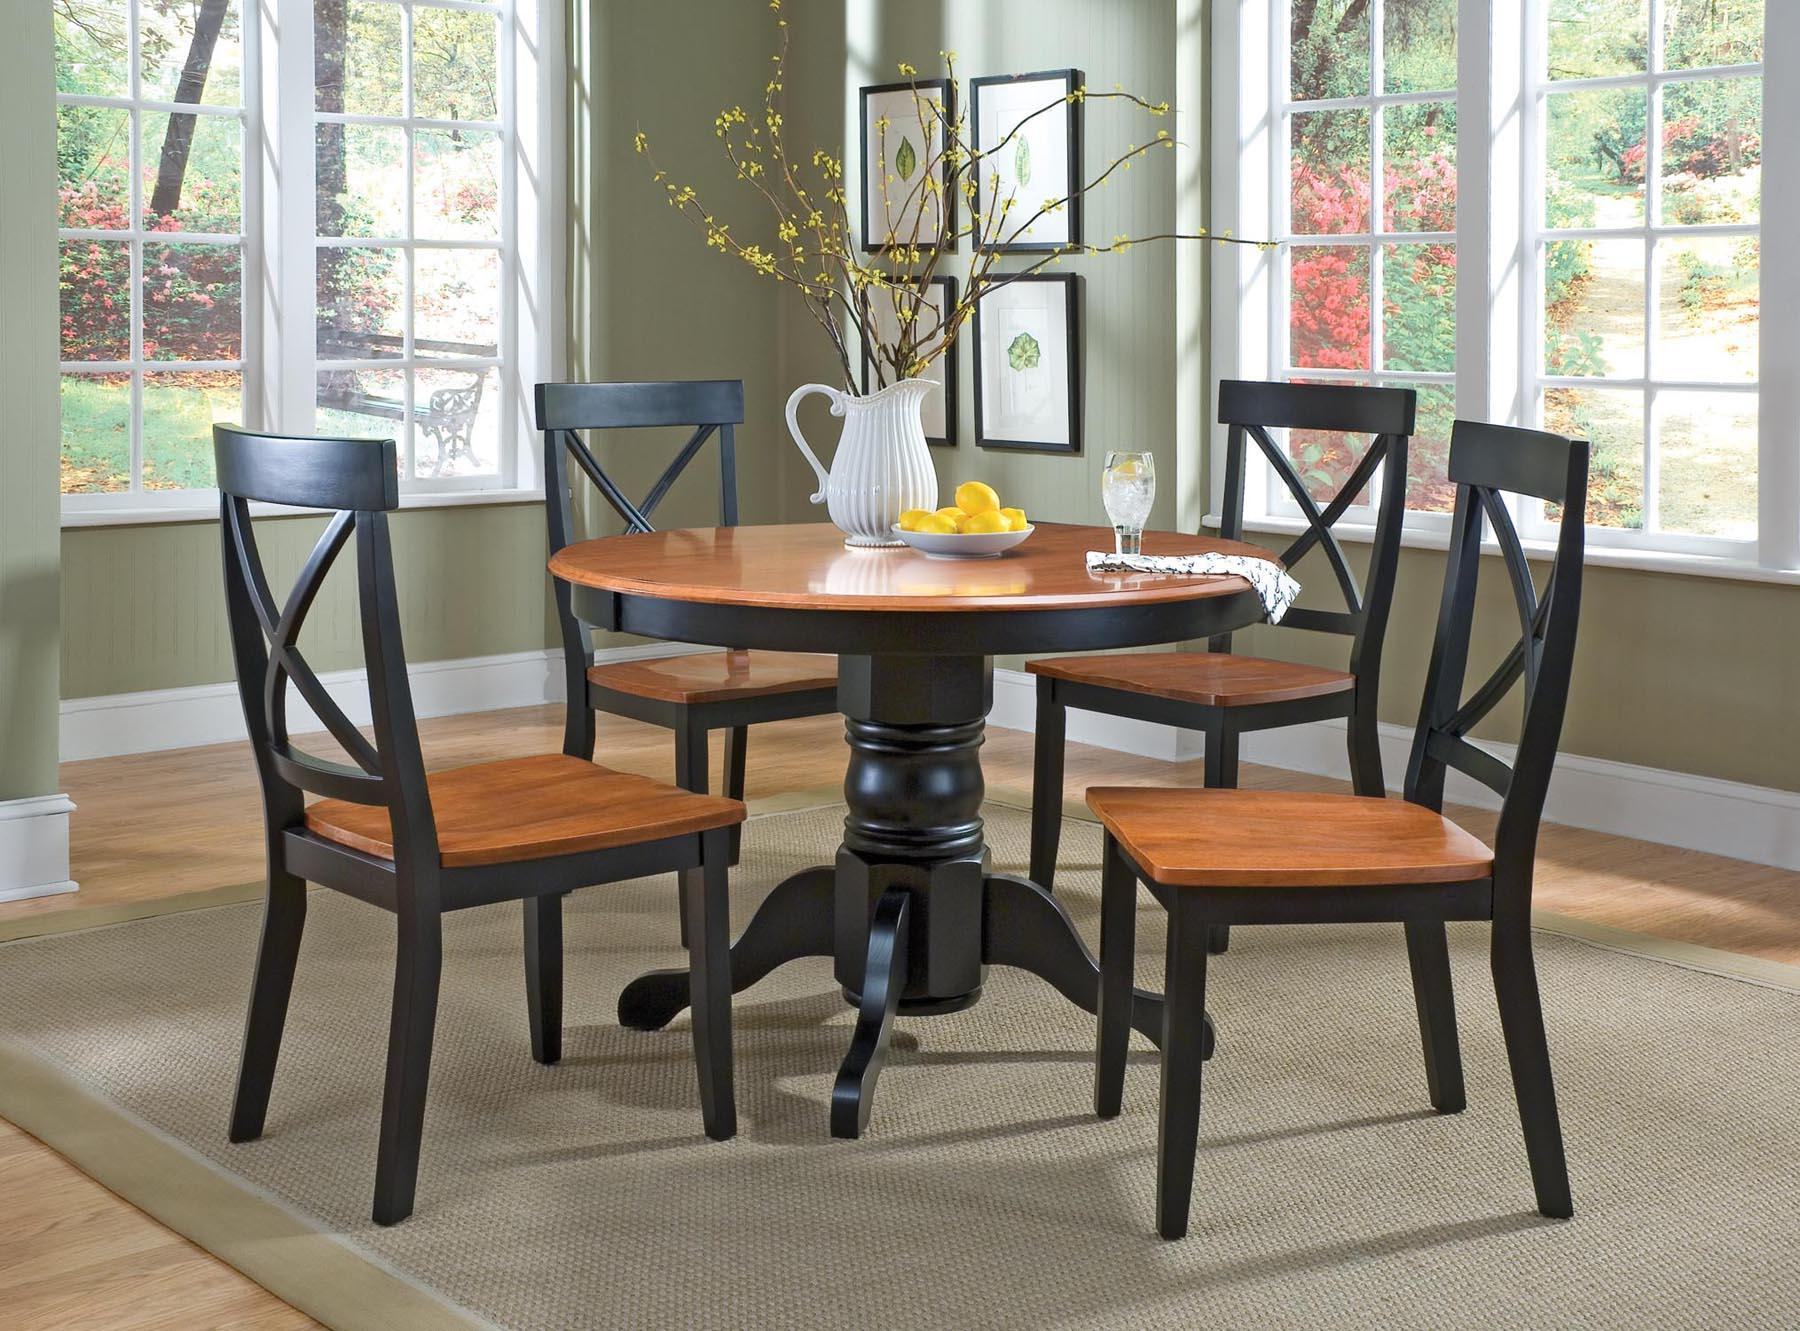 Wood Table 4 Chairs Windows Pics Rug There Are Some Designs Of Dining Room